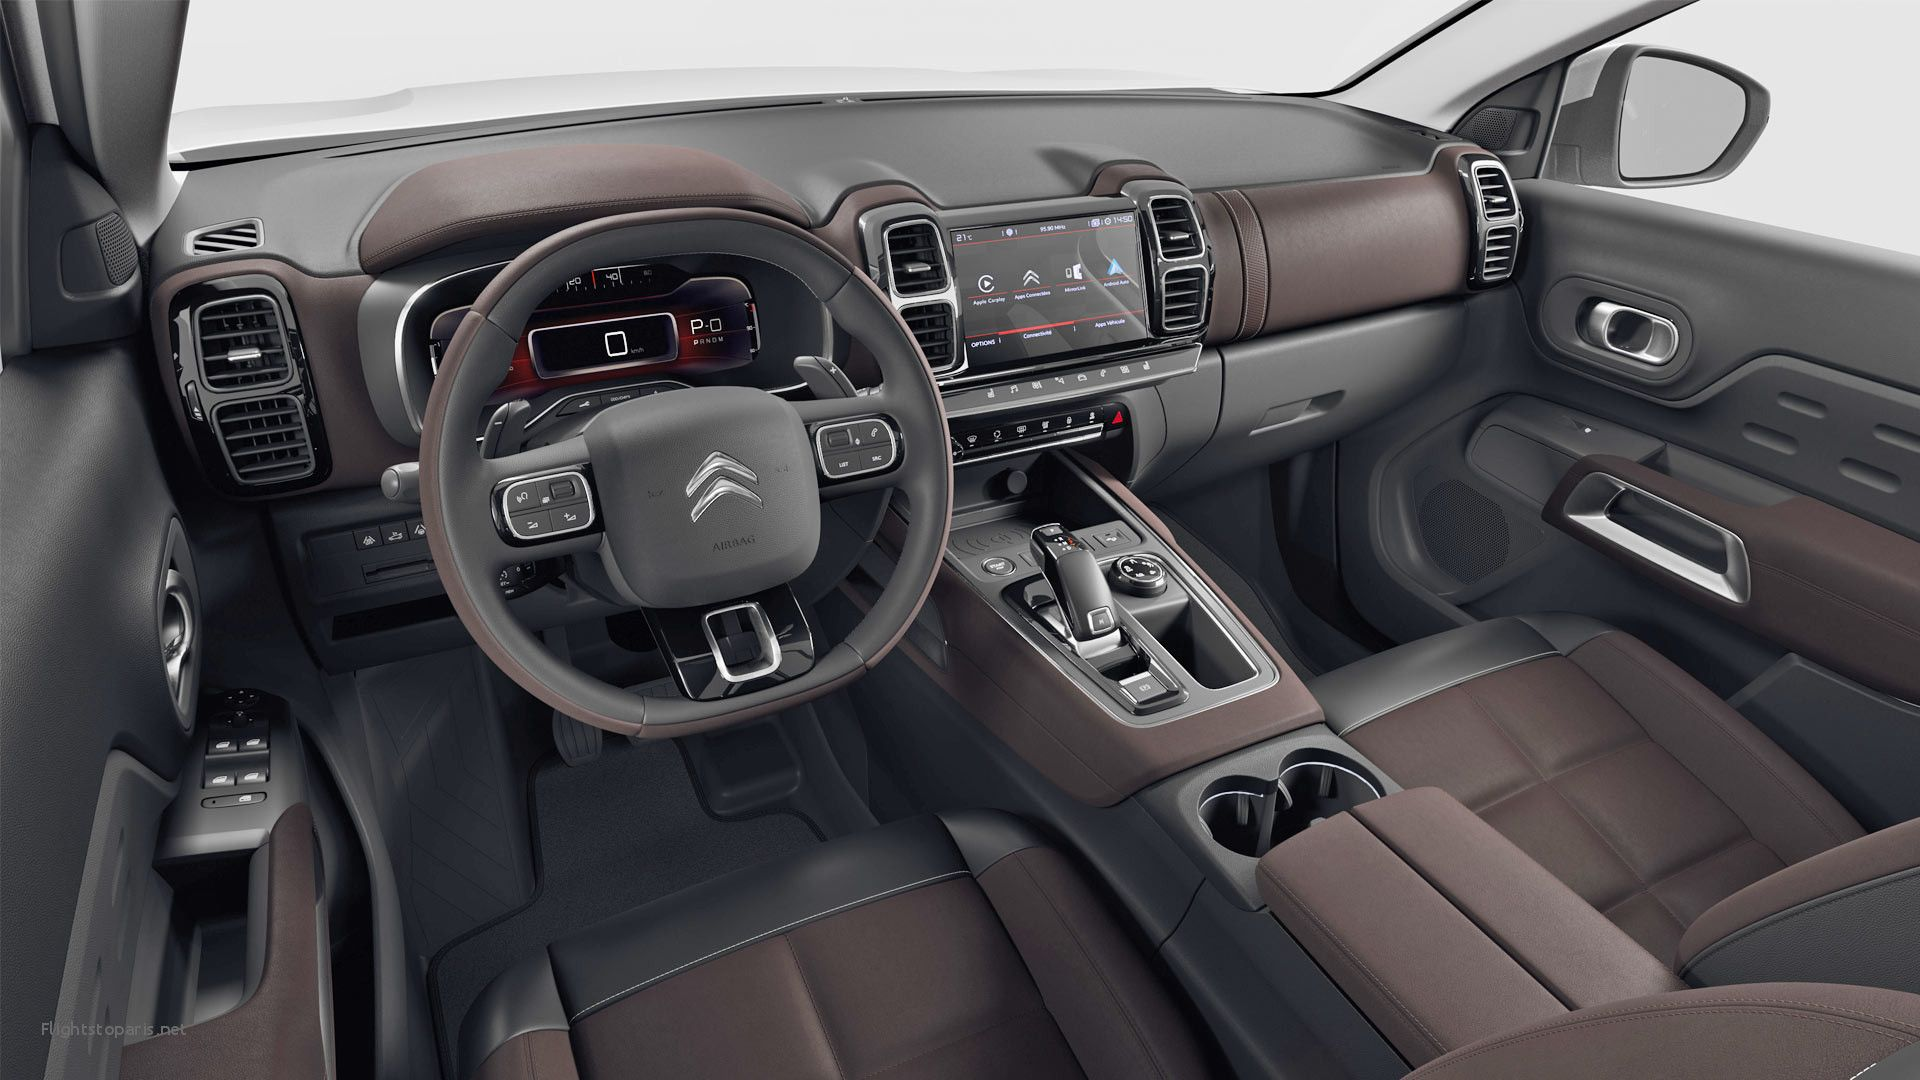 New Citroen C5 2019 Interior, Exterior and Review - Pleasant for you